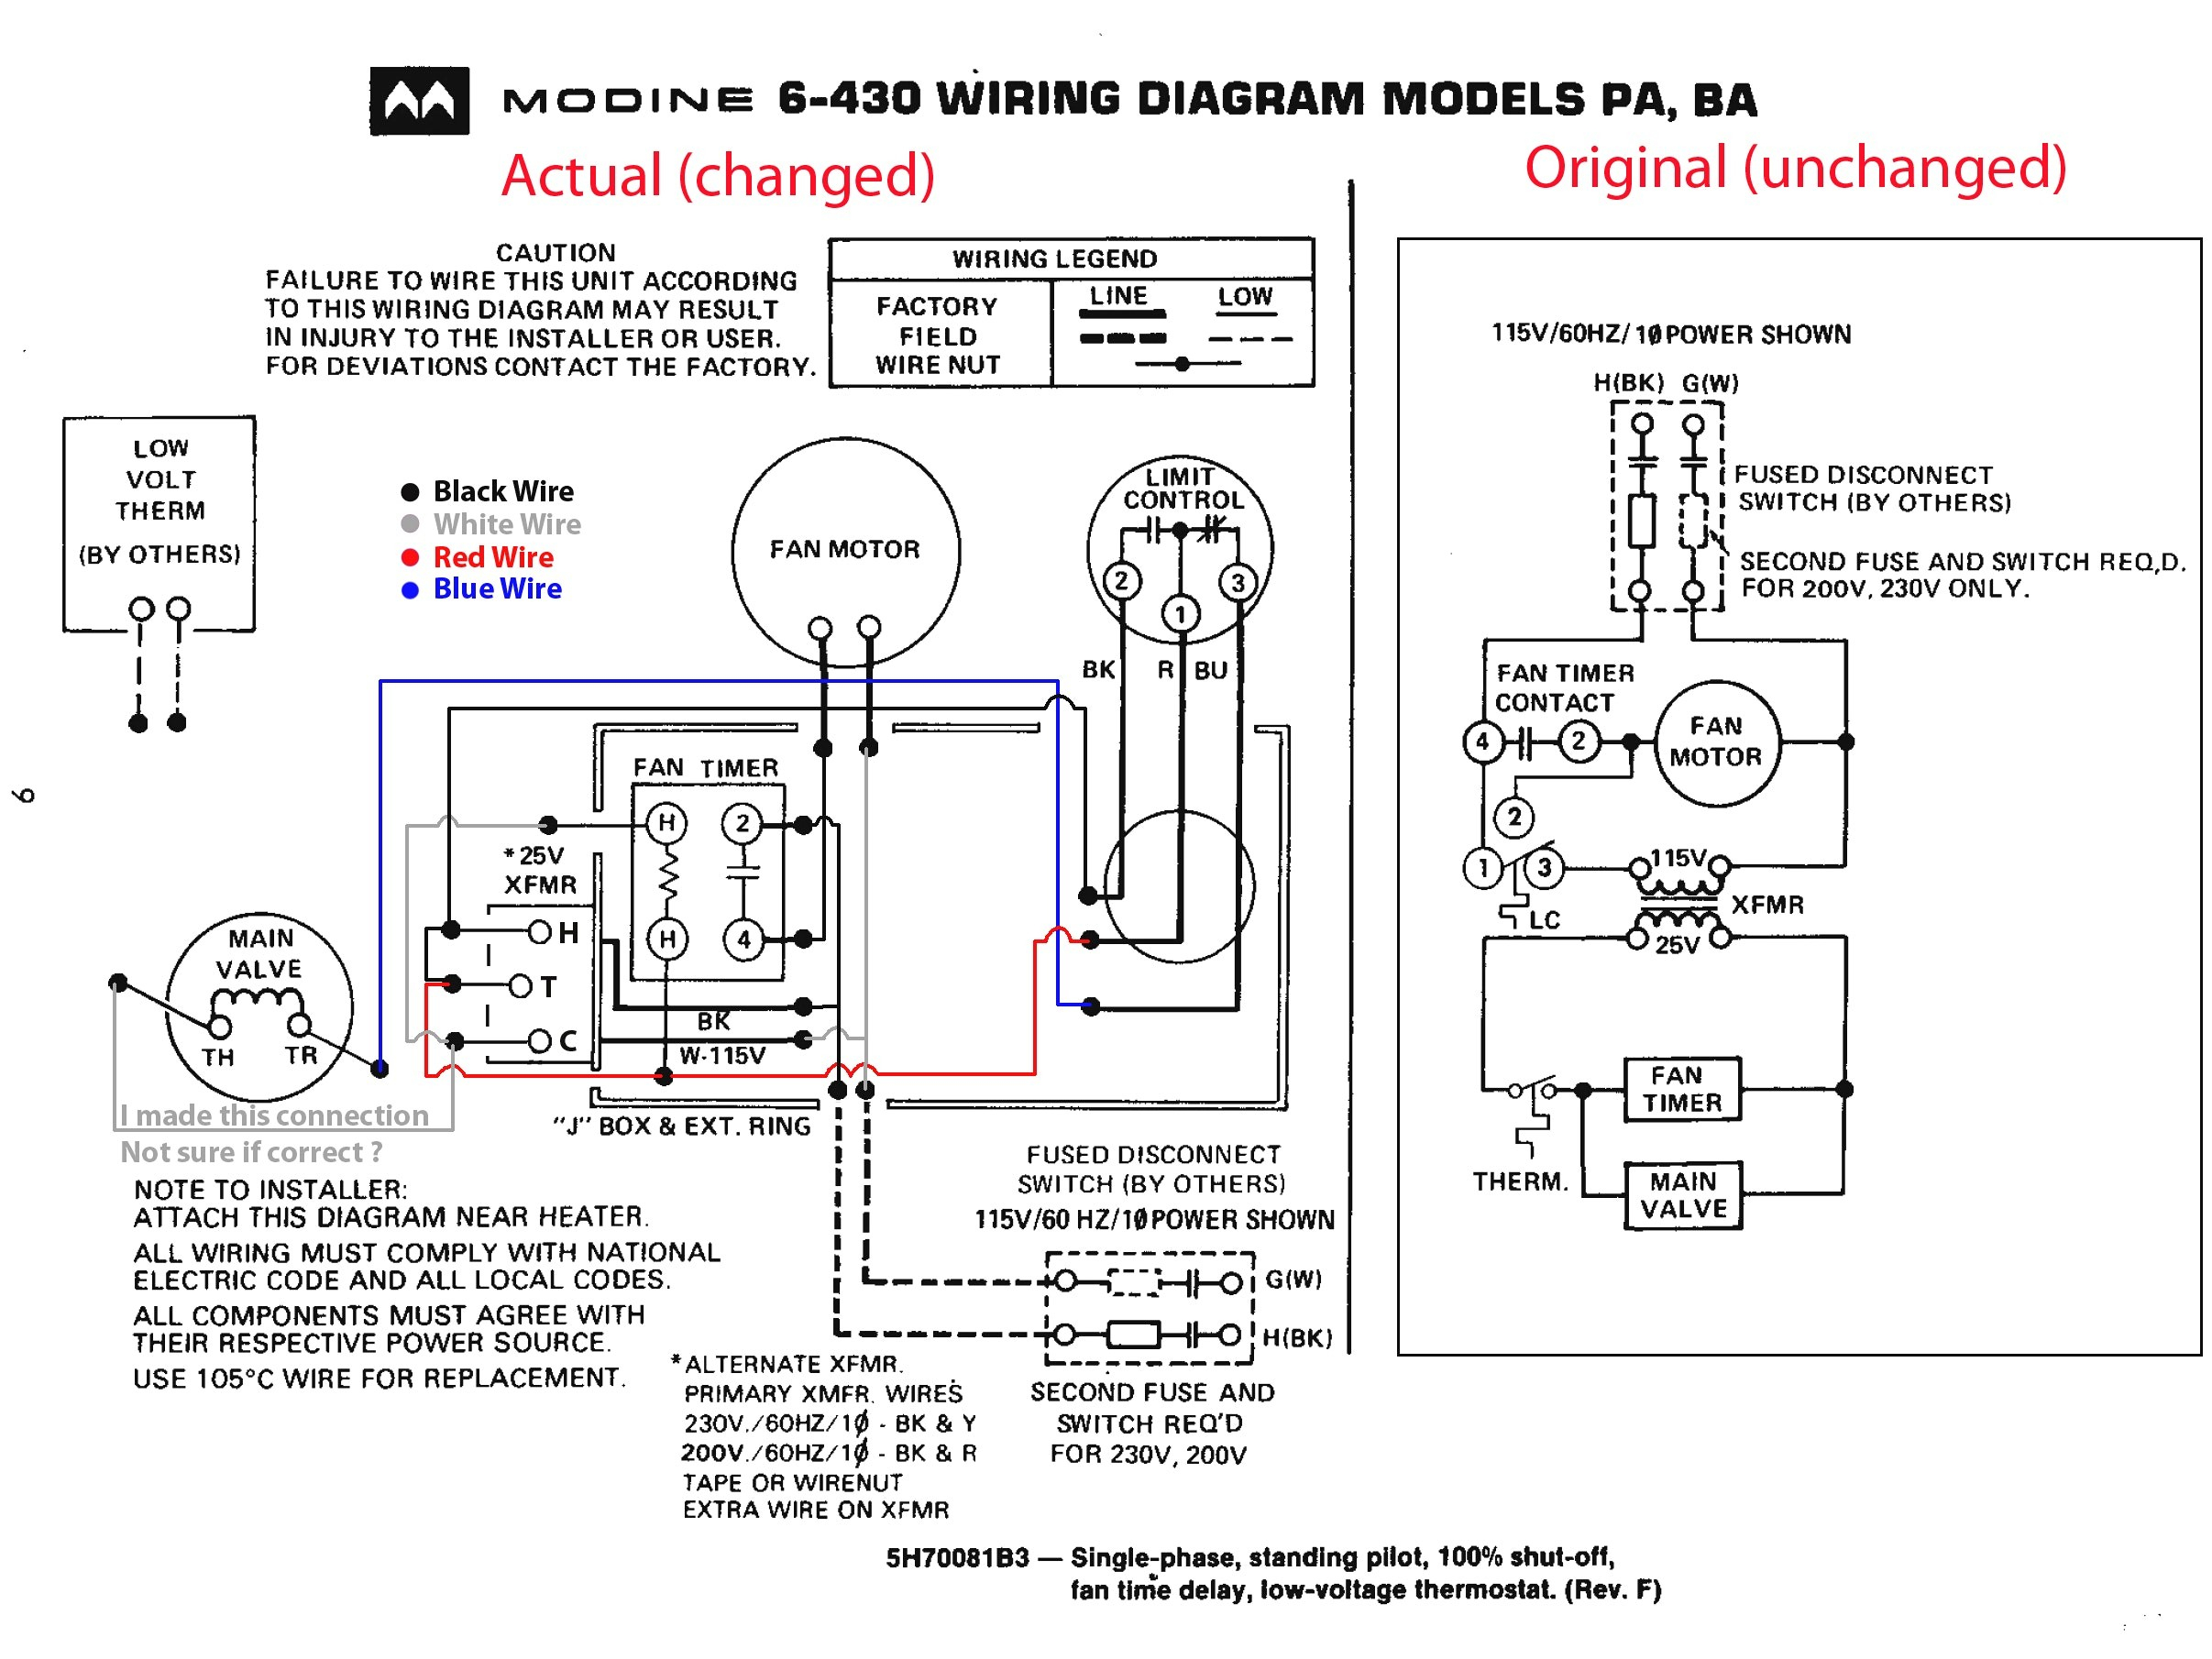 atwood furnace wiring diagram Download-Wiring Diagram for Rv Furnace Fresh Wonderful atwood Furnace Wiring Diagram Rv Heater In Webtor Me 9-n